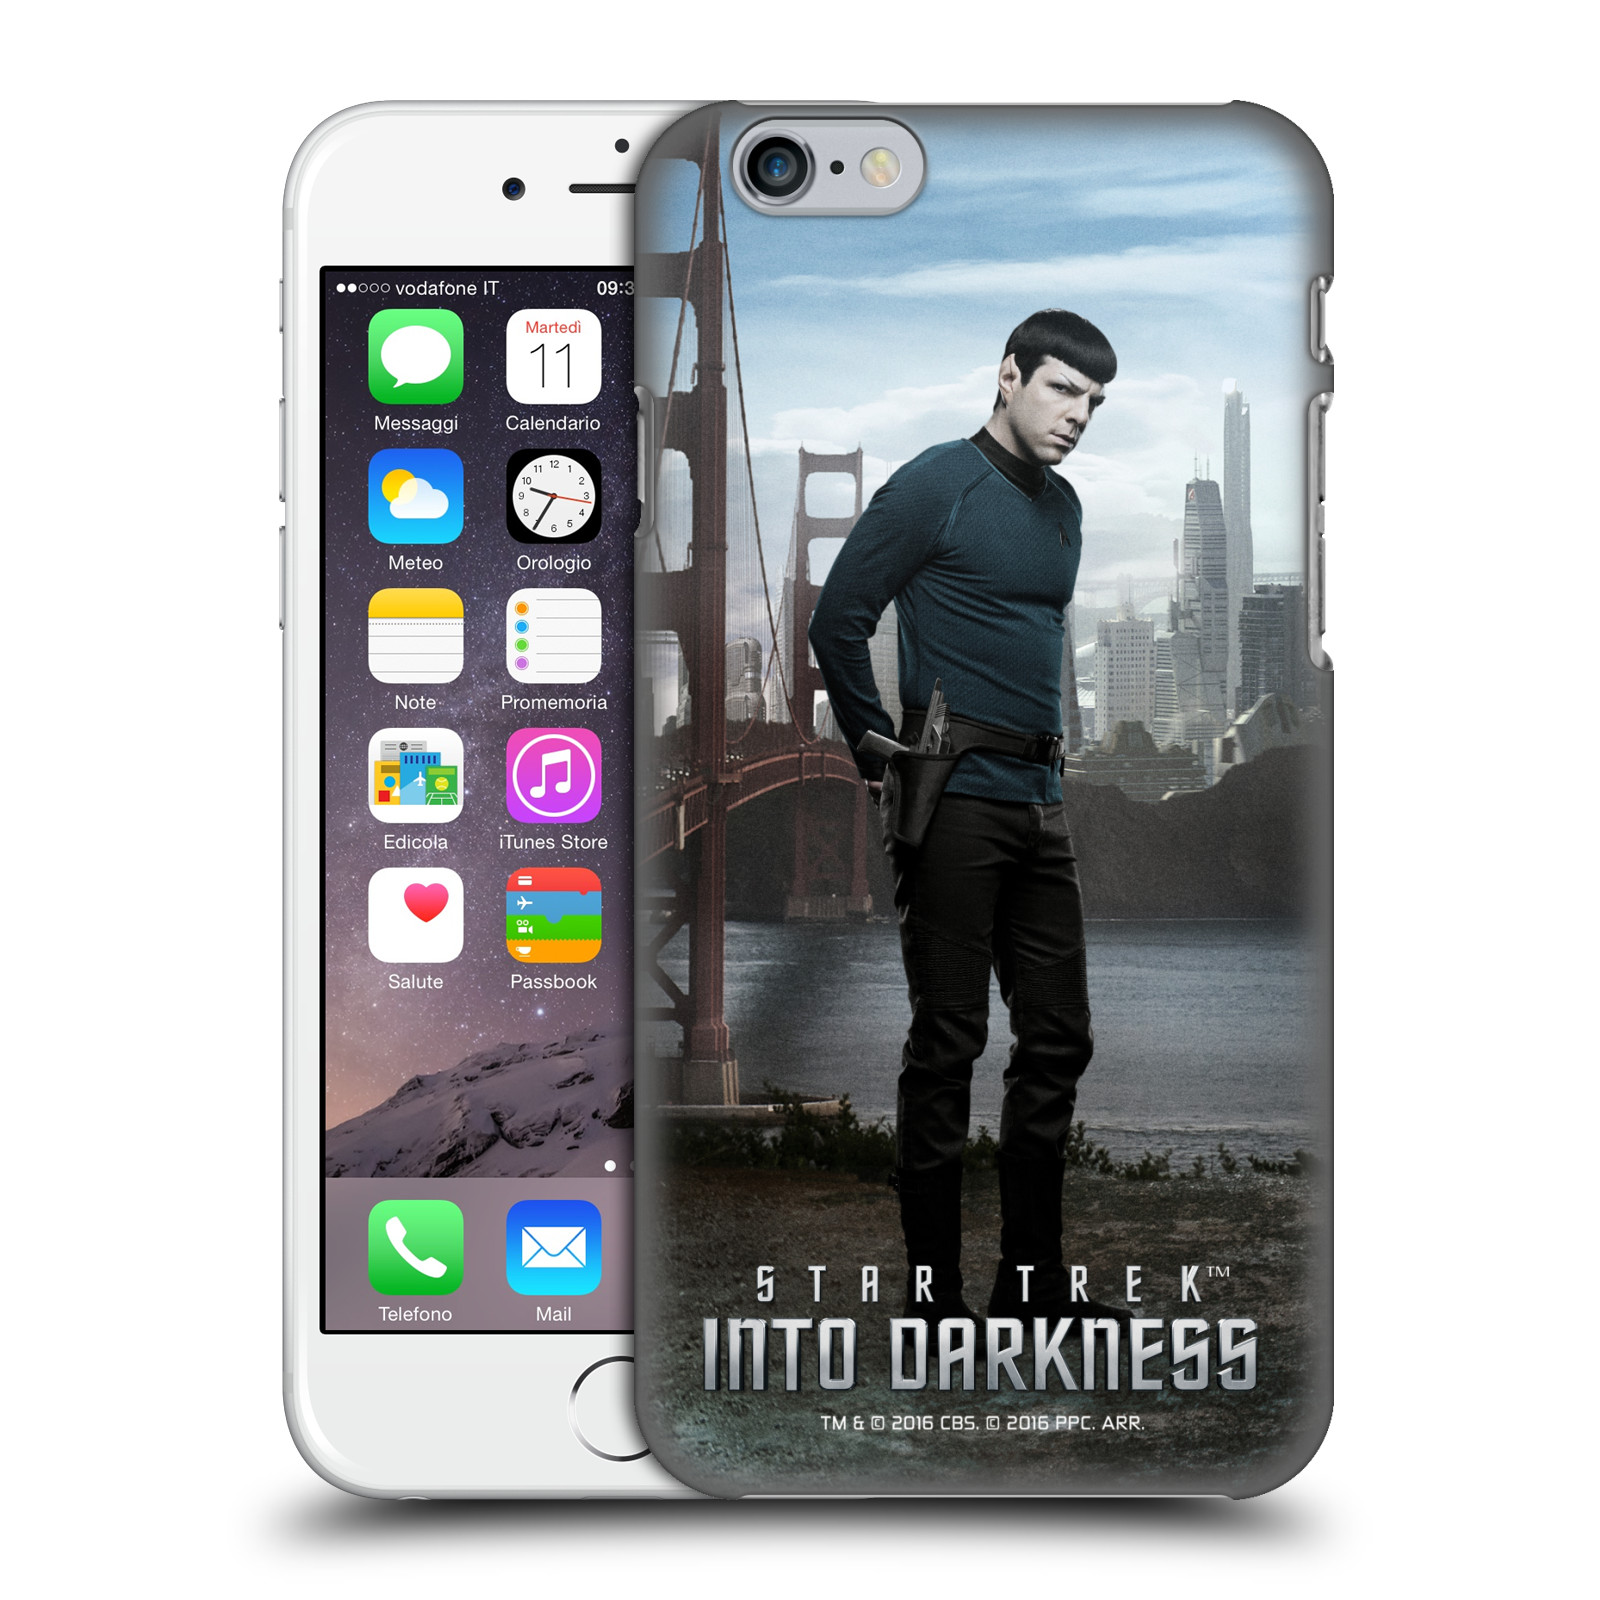 Star Trek Characters Into Darkness XII-Spock